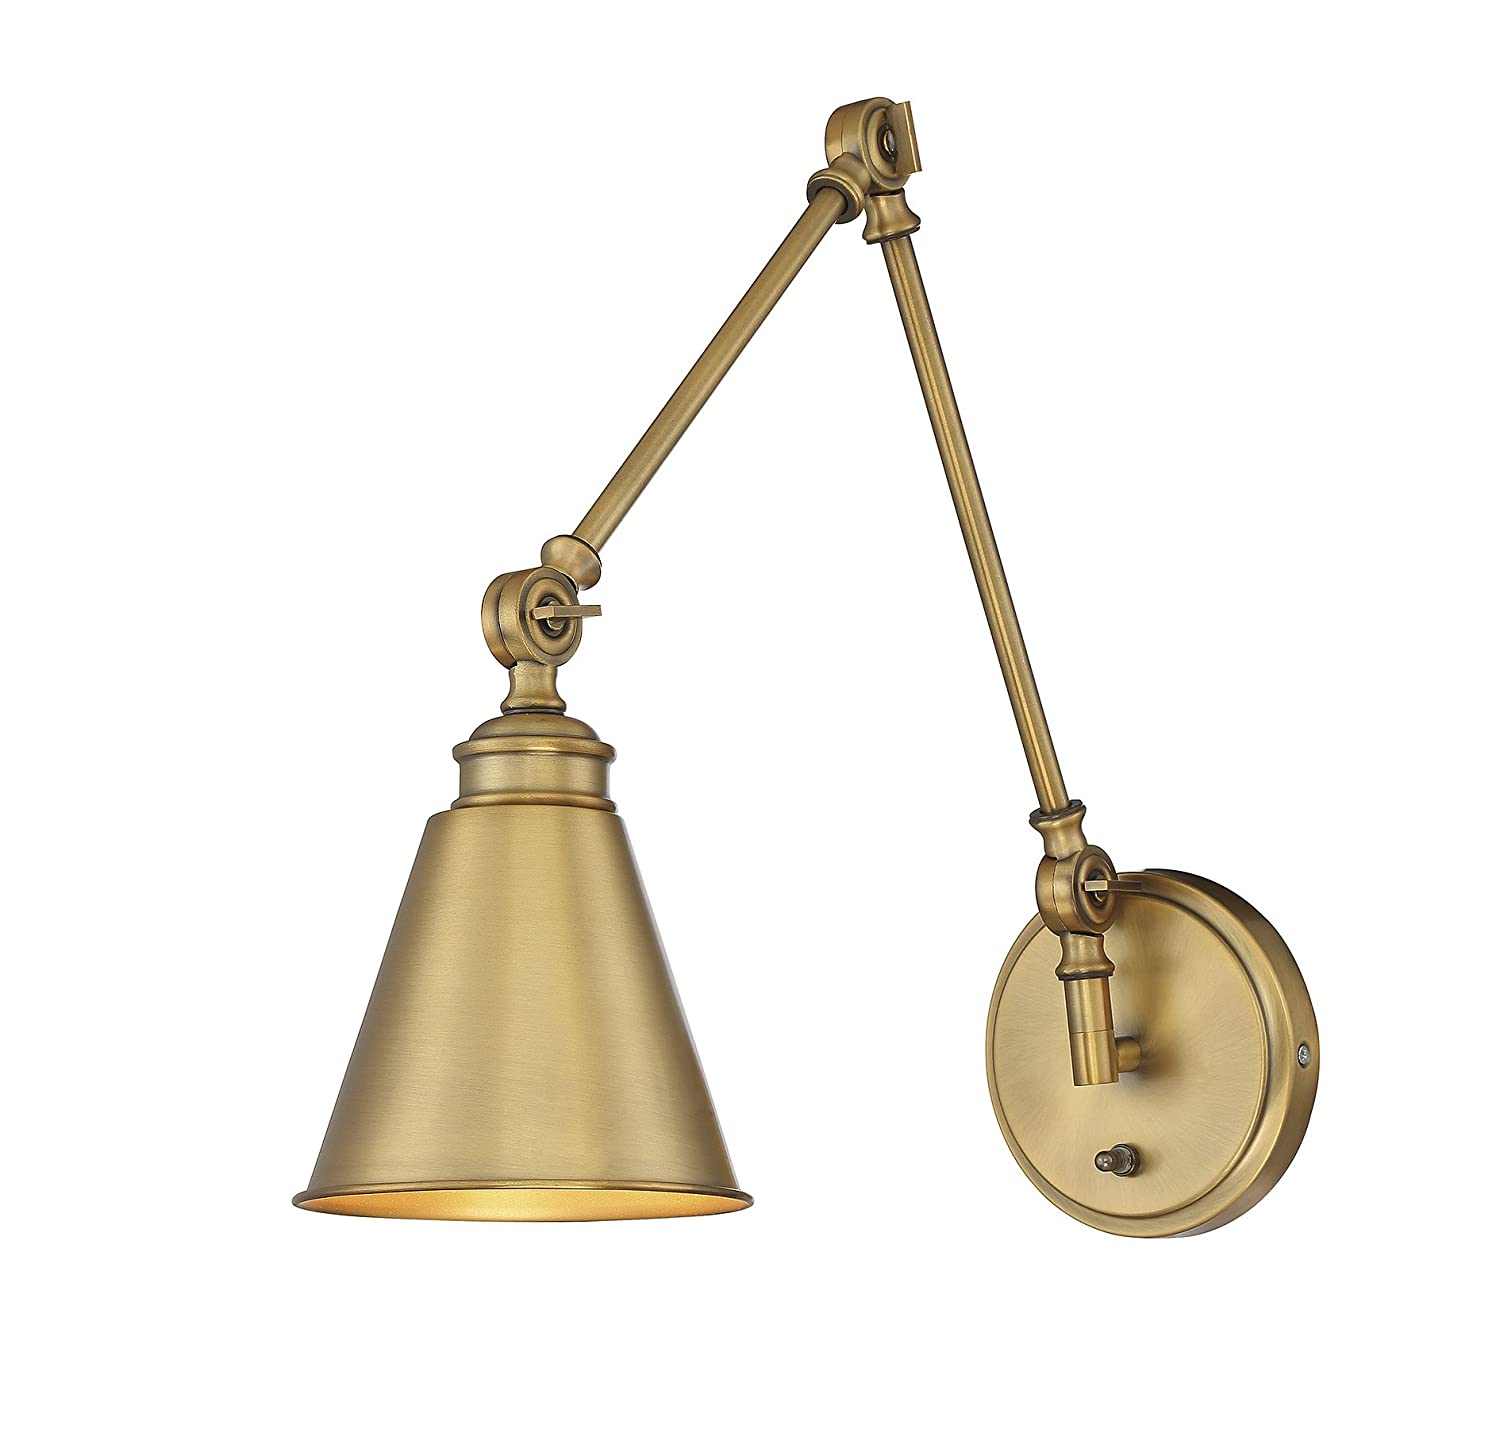 Savoy House 9 961CP 1 322 Morland 1 Light Adjustable Sconce W/Plug In Warm  Brass     Amazon.com